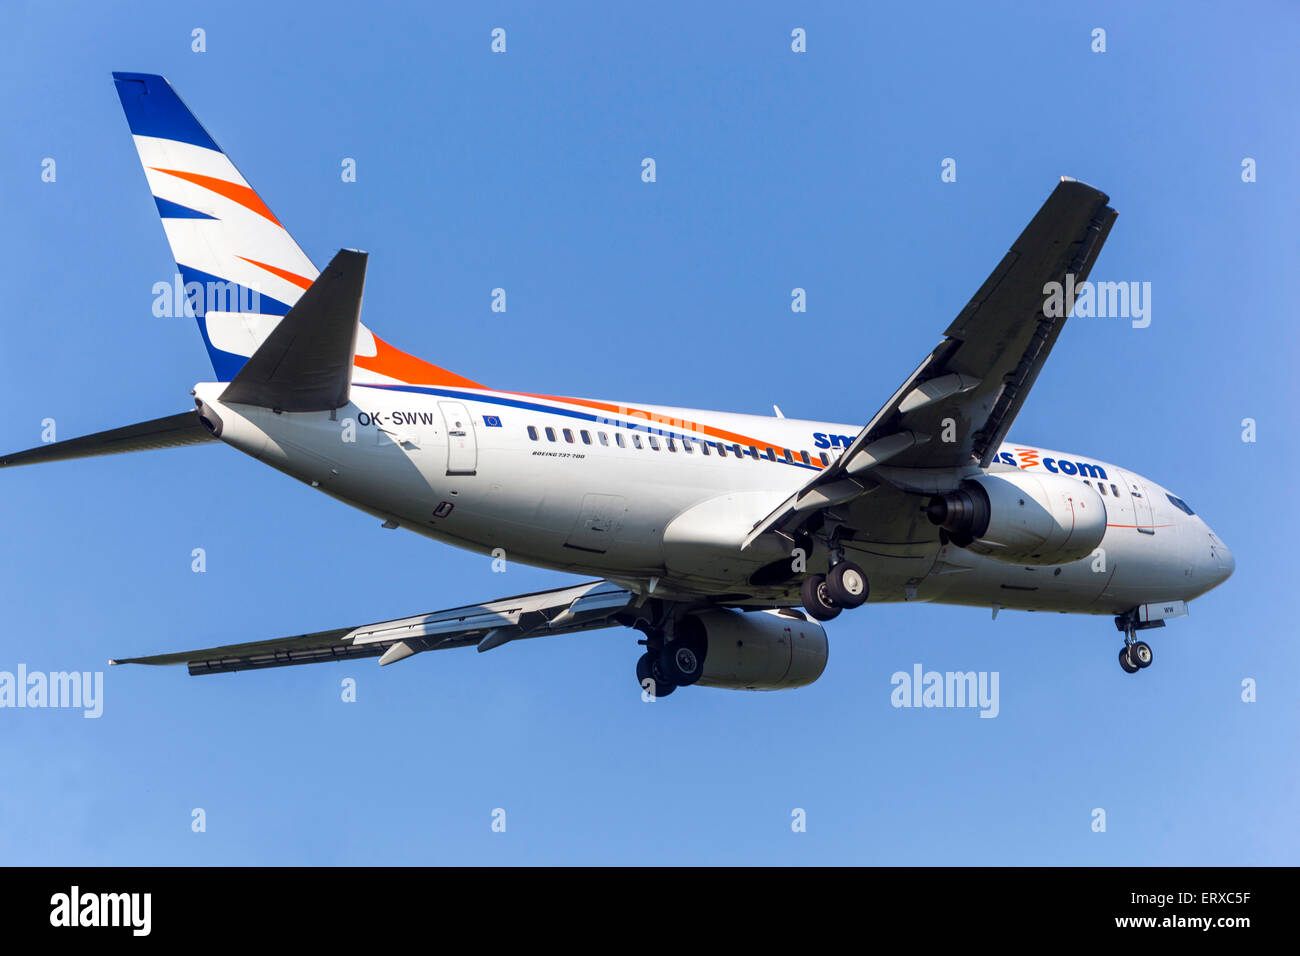 Boeing 737 operated by Smartwings approach for landing Prague, Czech Republic - Stock Image